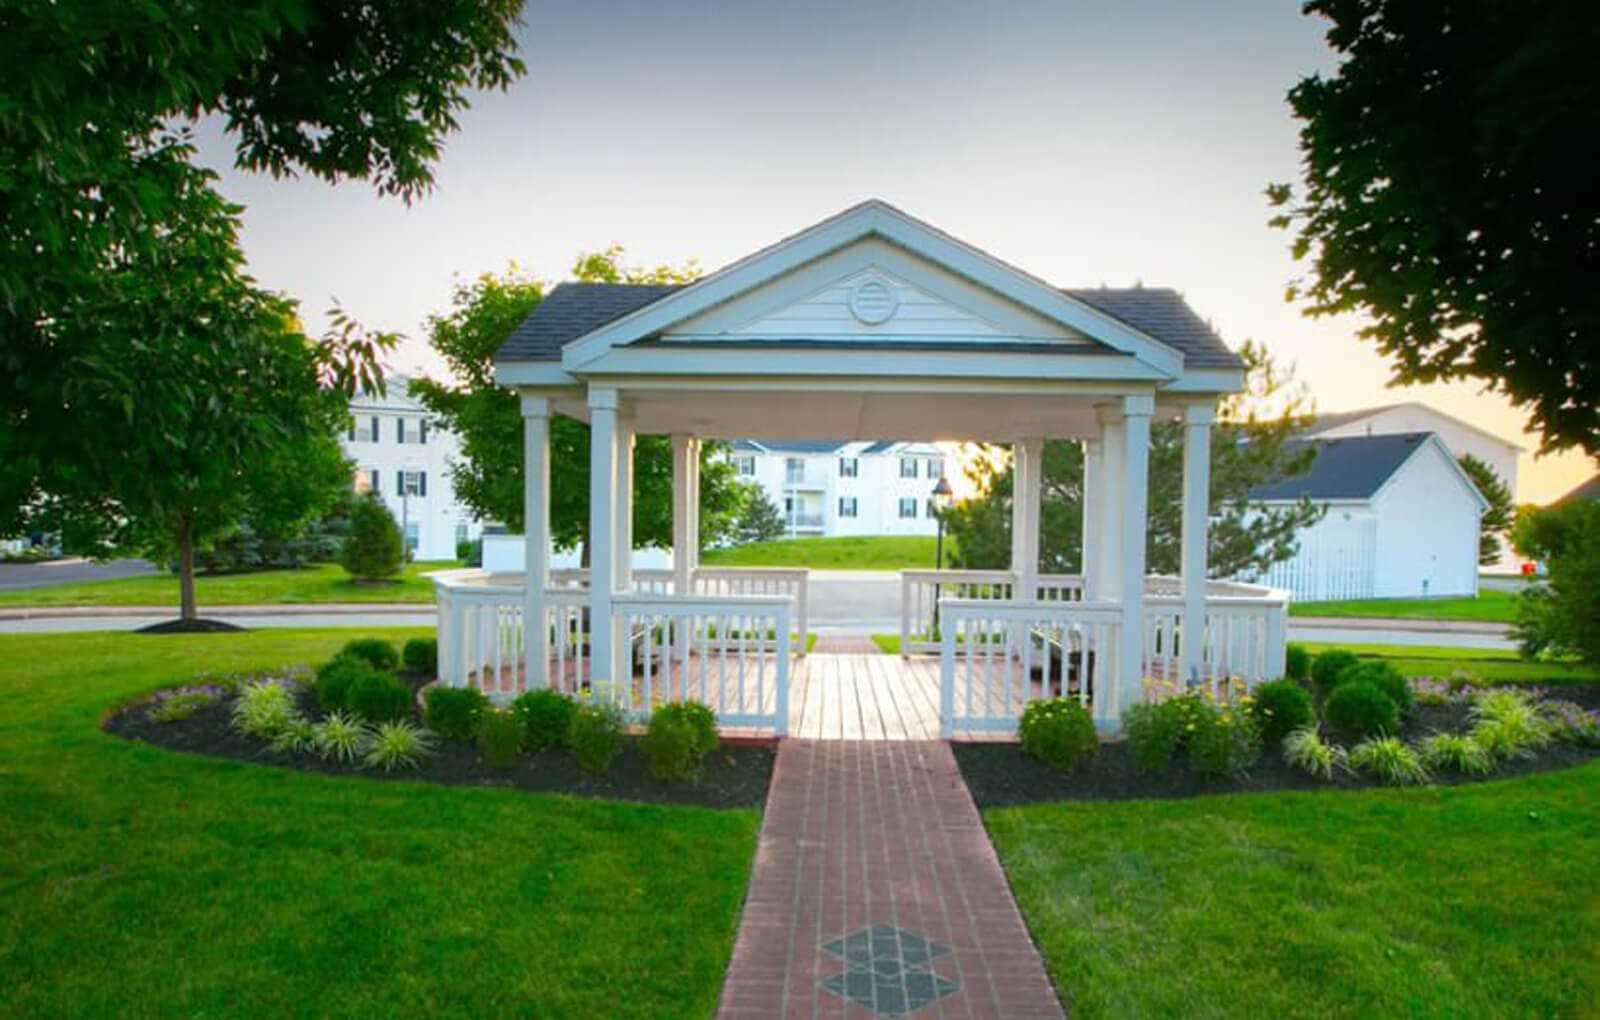 cabana at The Village of Western Reserve Apartments in Streetsboro, OH